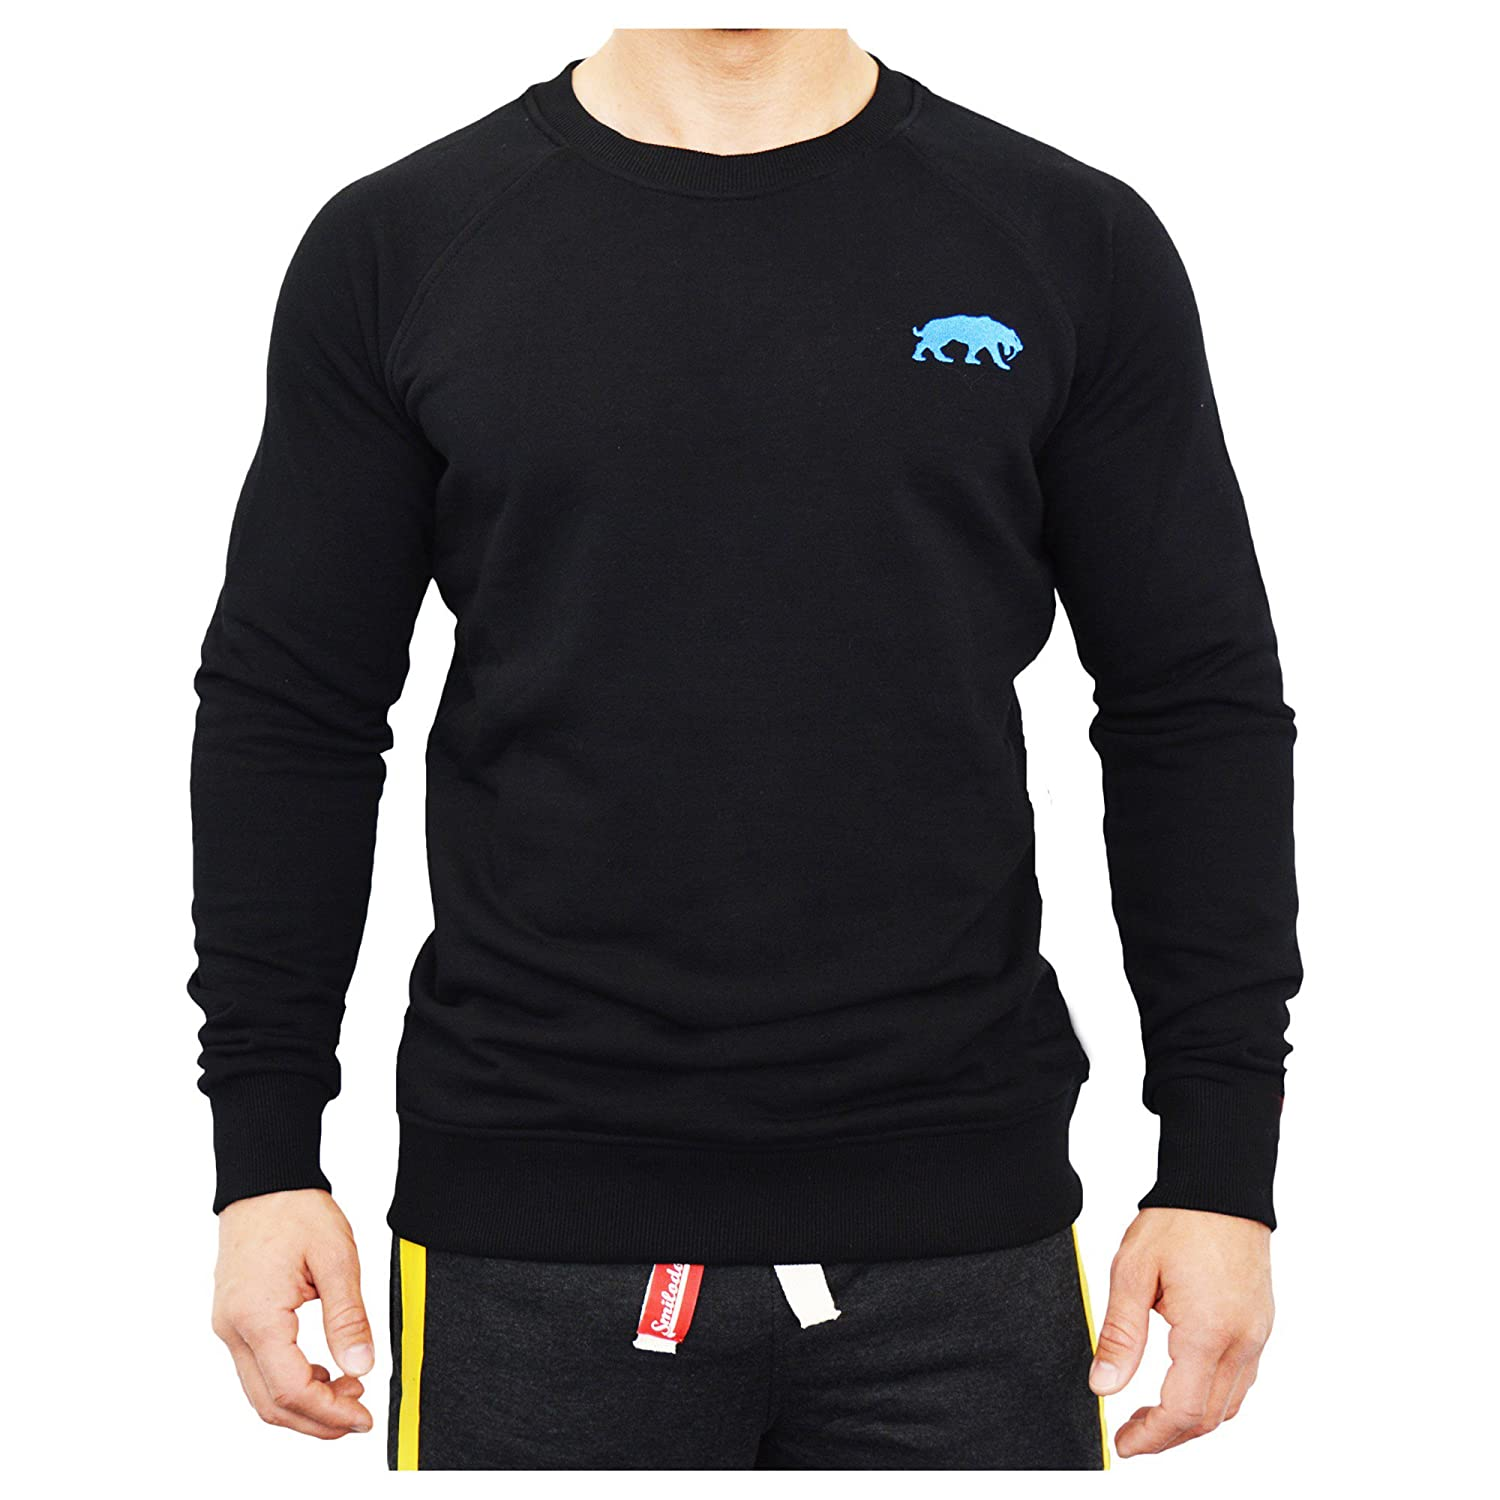 SMILODOX Slim Fit Sweatshirt, Manica Lunga Uomo